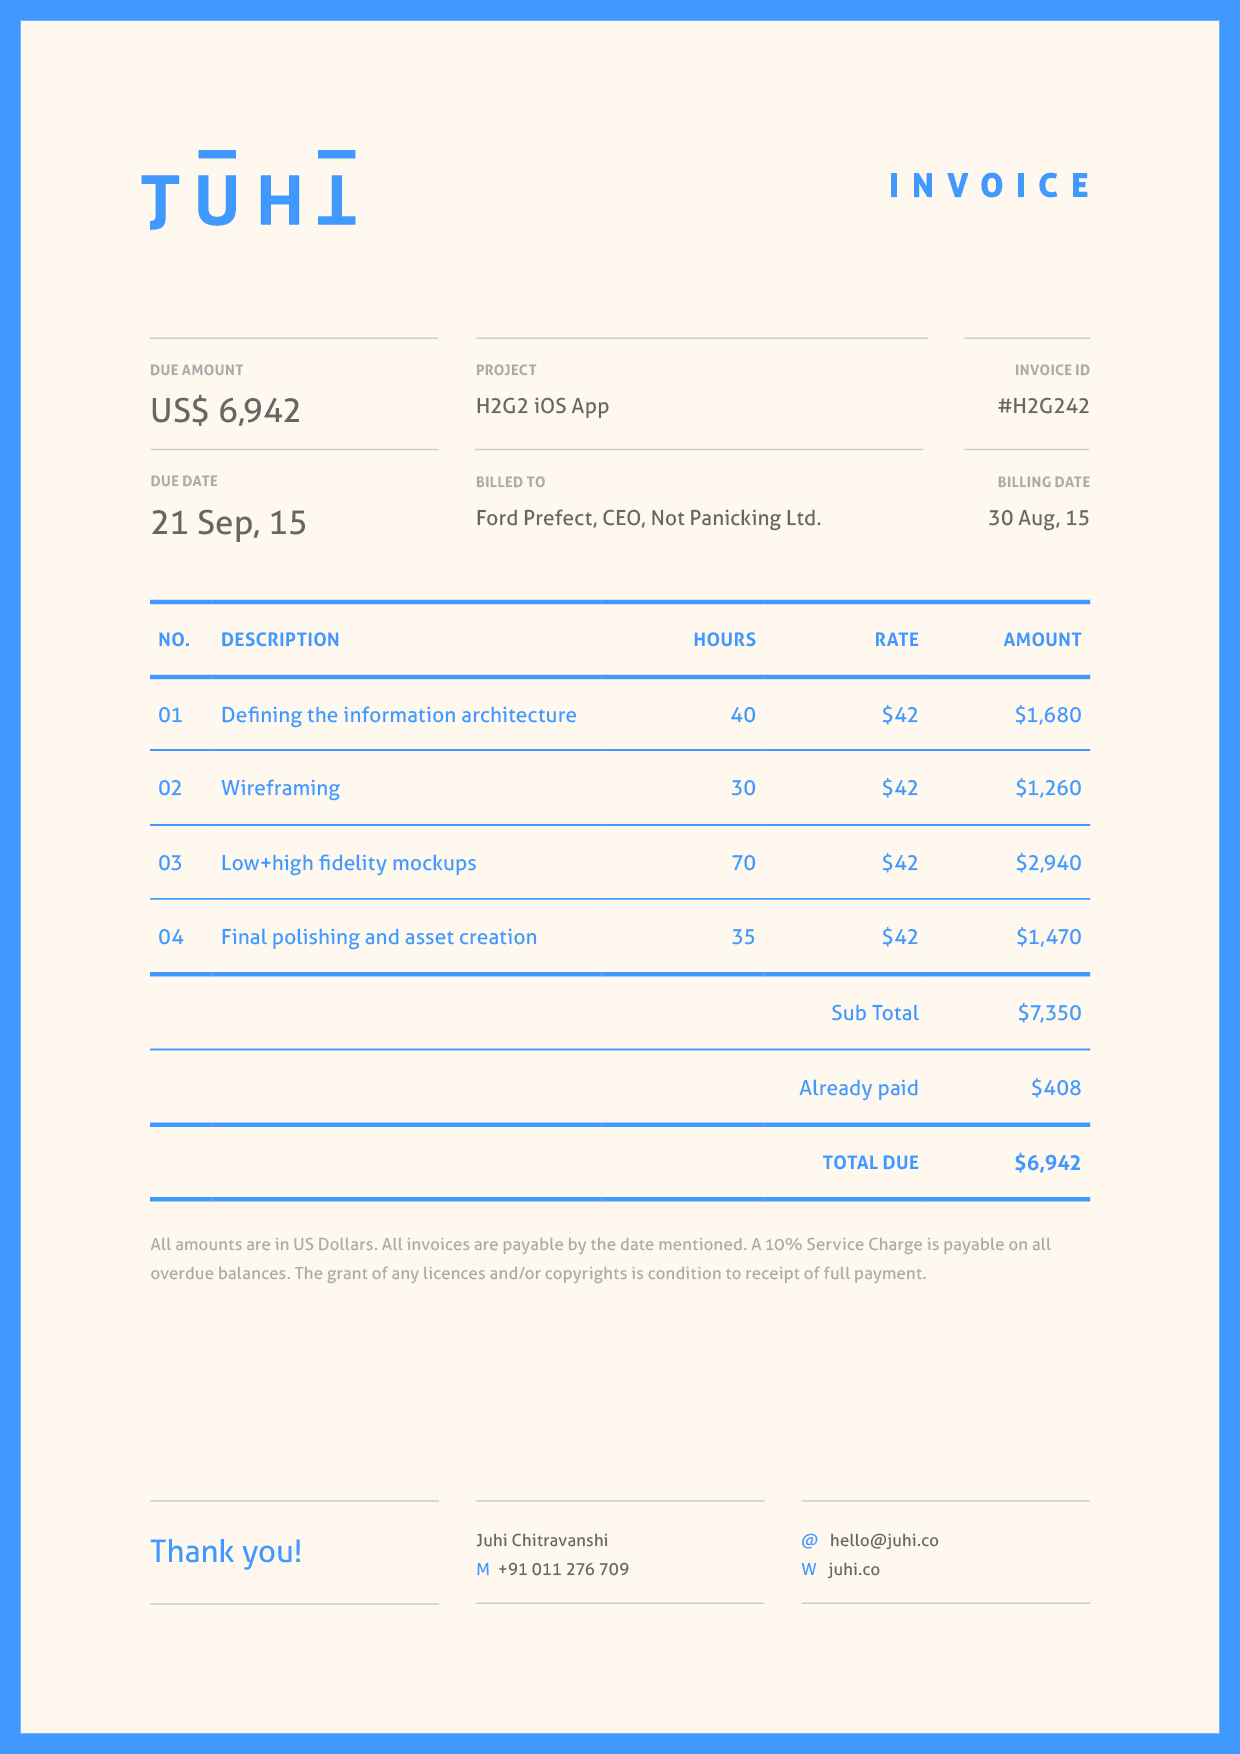 Usdgus  Pleasing Dont Hold Back On Your Invoice  Inspiring Designs  With Inspiring Invoice By Juhi Chitravanshi Follow With Archaic American Depository Receipts And Global Depository Receipts Also Boots Return Policy No Receipt In Addition Written Receipt For Car Sale And Receipt Printer Ipad As Well As Free Printable Receipts For Payment Additionally School Fees Receipt From Inspirationfeedcom With Usdgus  Inspiring Dont Hold Back On Your Invoice  Inspiring Designs  With Archaic Invoice By Juhi Chitravanshi Follow And Pleasing American Depository Receipts And Global Depository Receipts Also Boots Return Policy No Receipt In Addition Written Receipt For Car Sale From Inspirationfeedcom